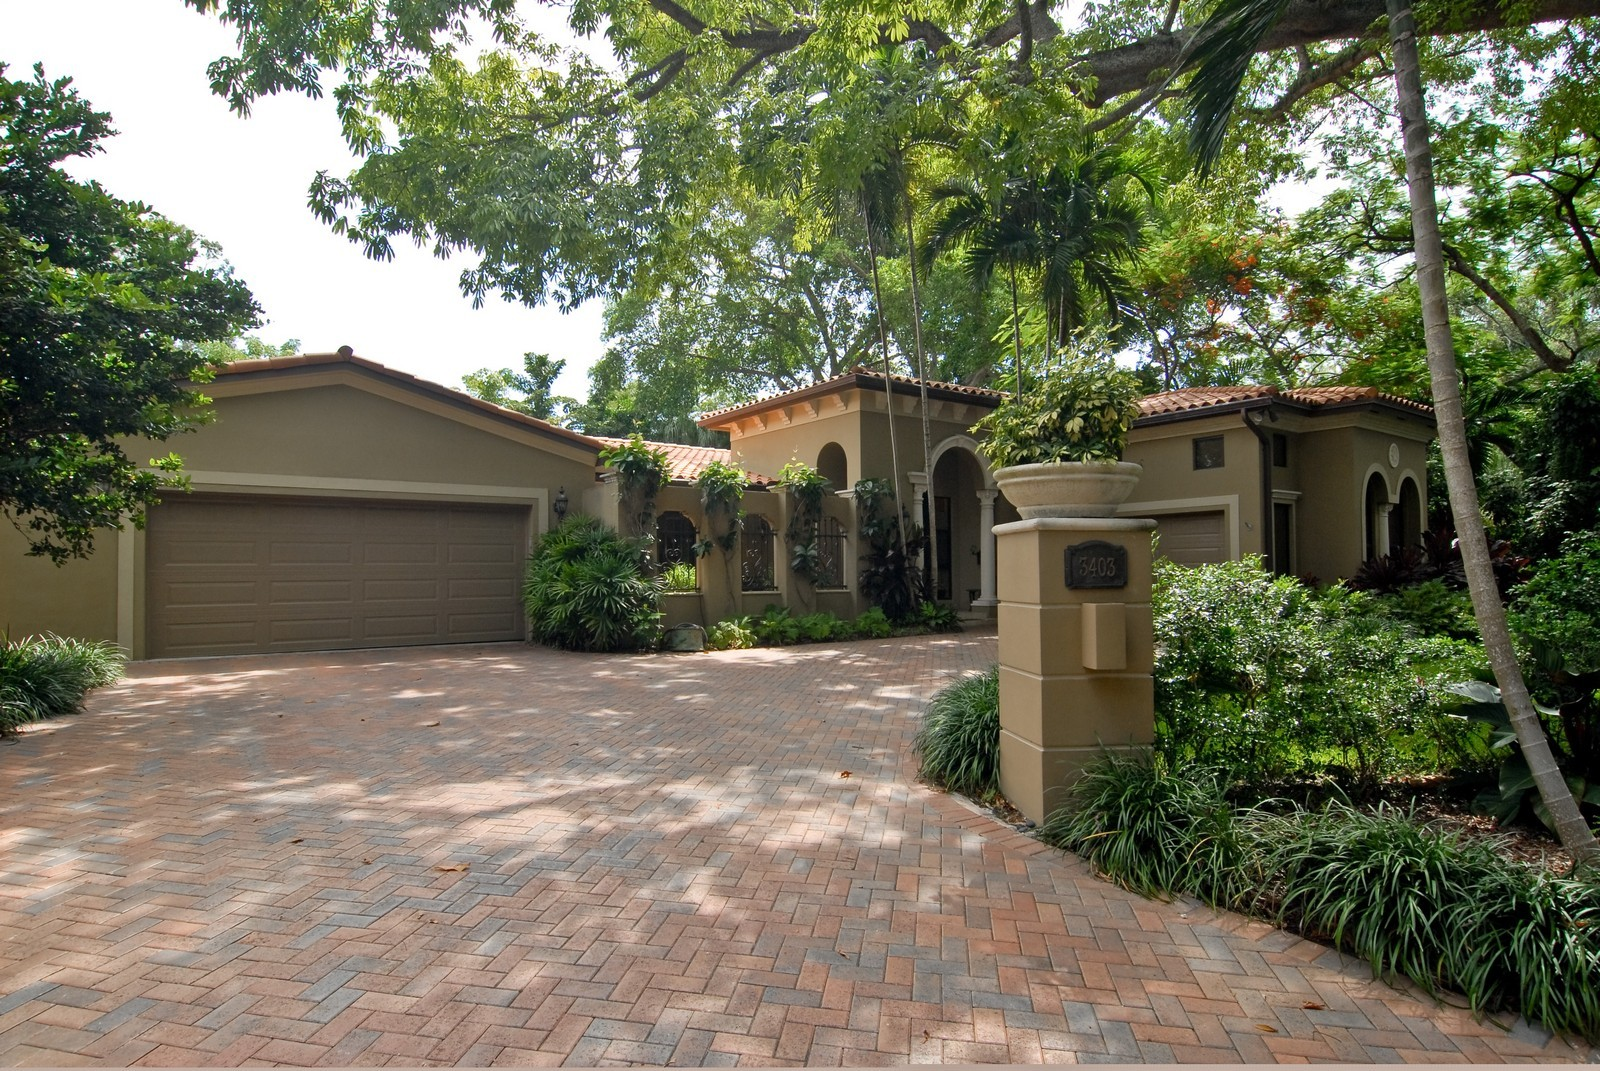 Real Estate Photography - 3403 Poinciana, Coconut Grove, FL, 33133 - Front View